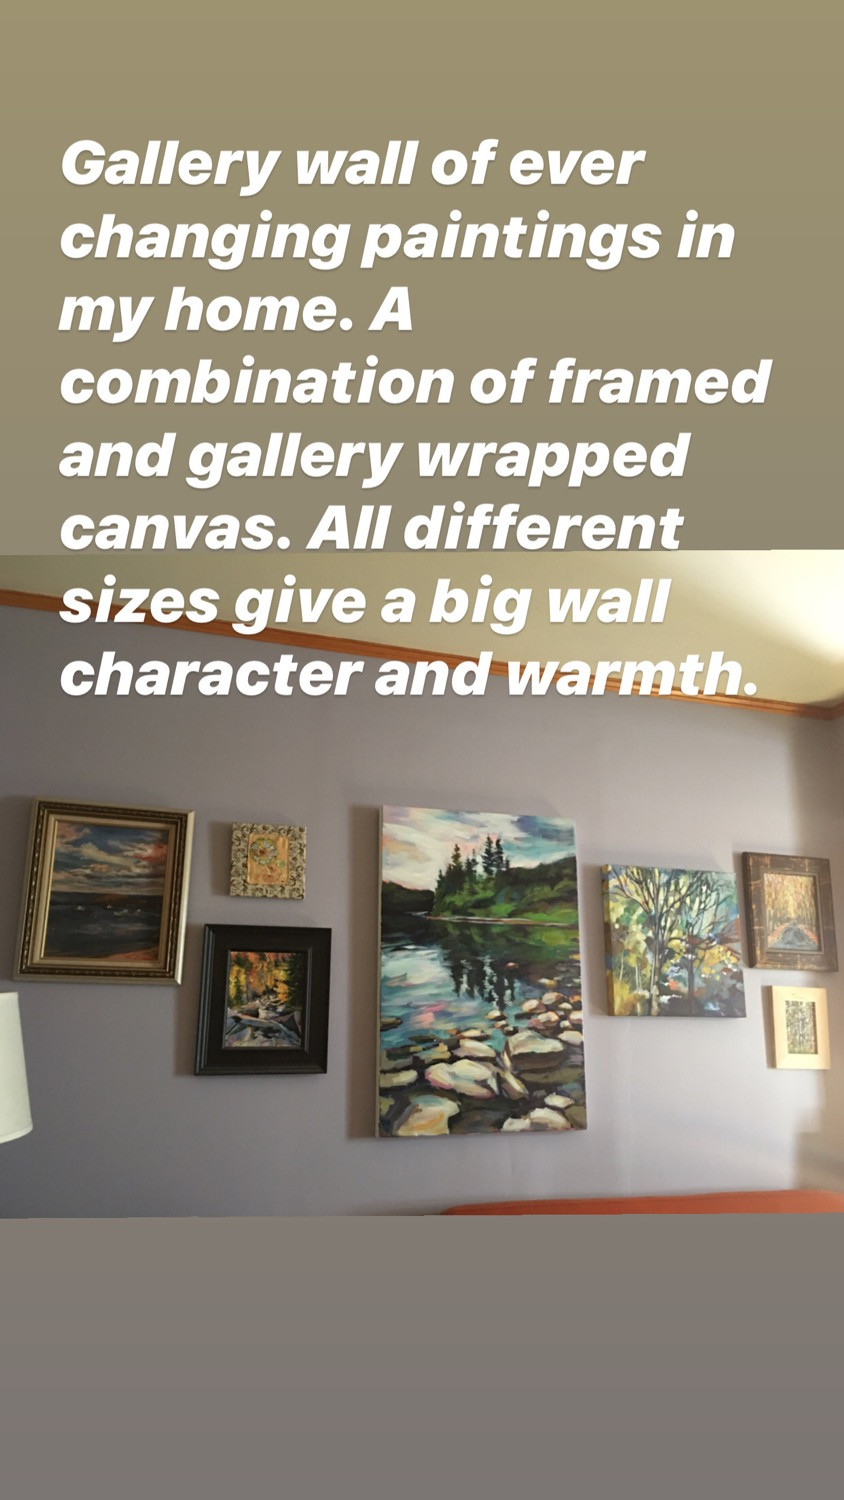 A gallery wall can define a room, show your personality, set your style apart from everyone else's.